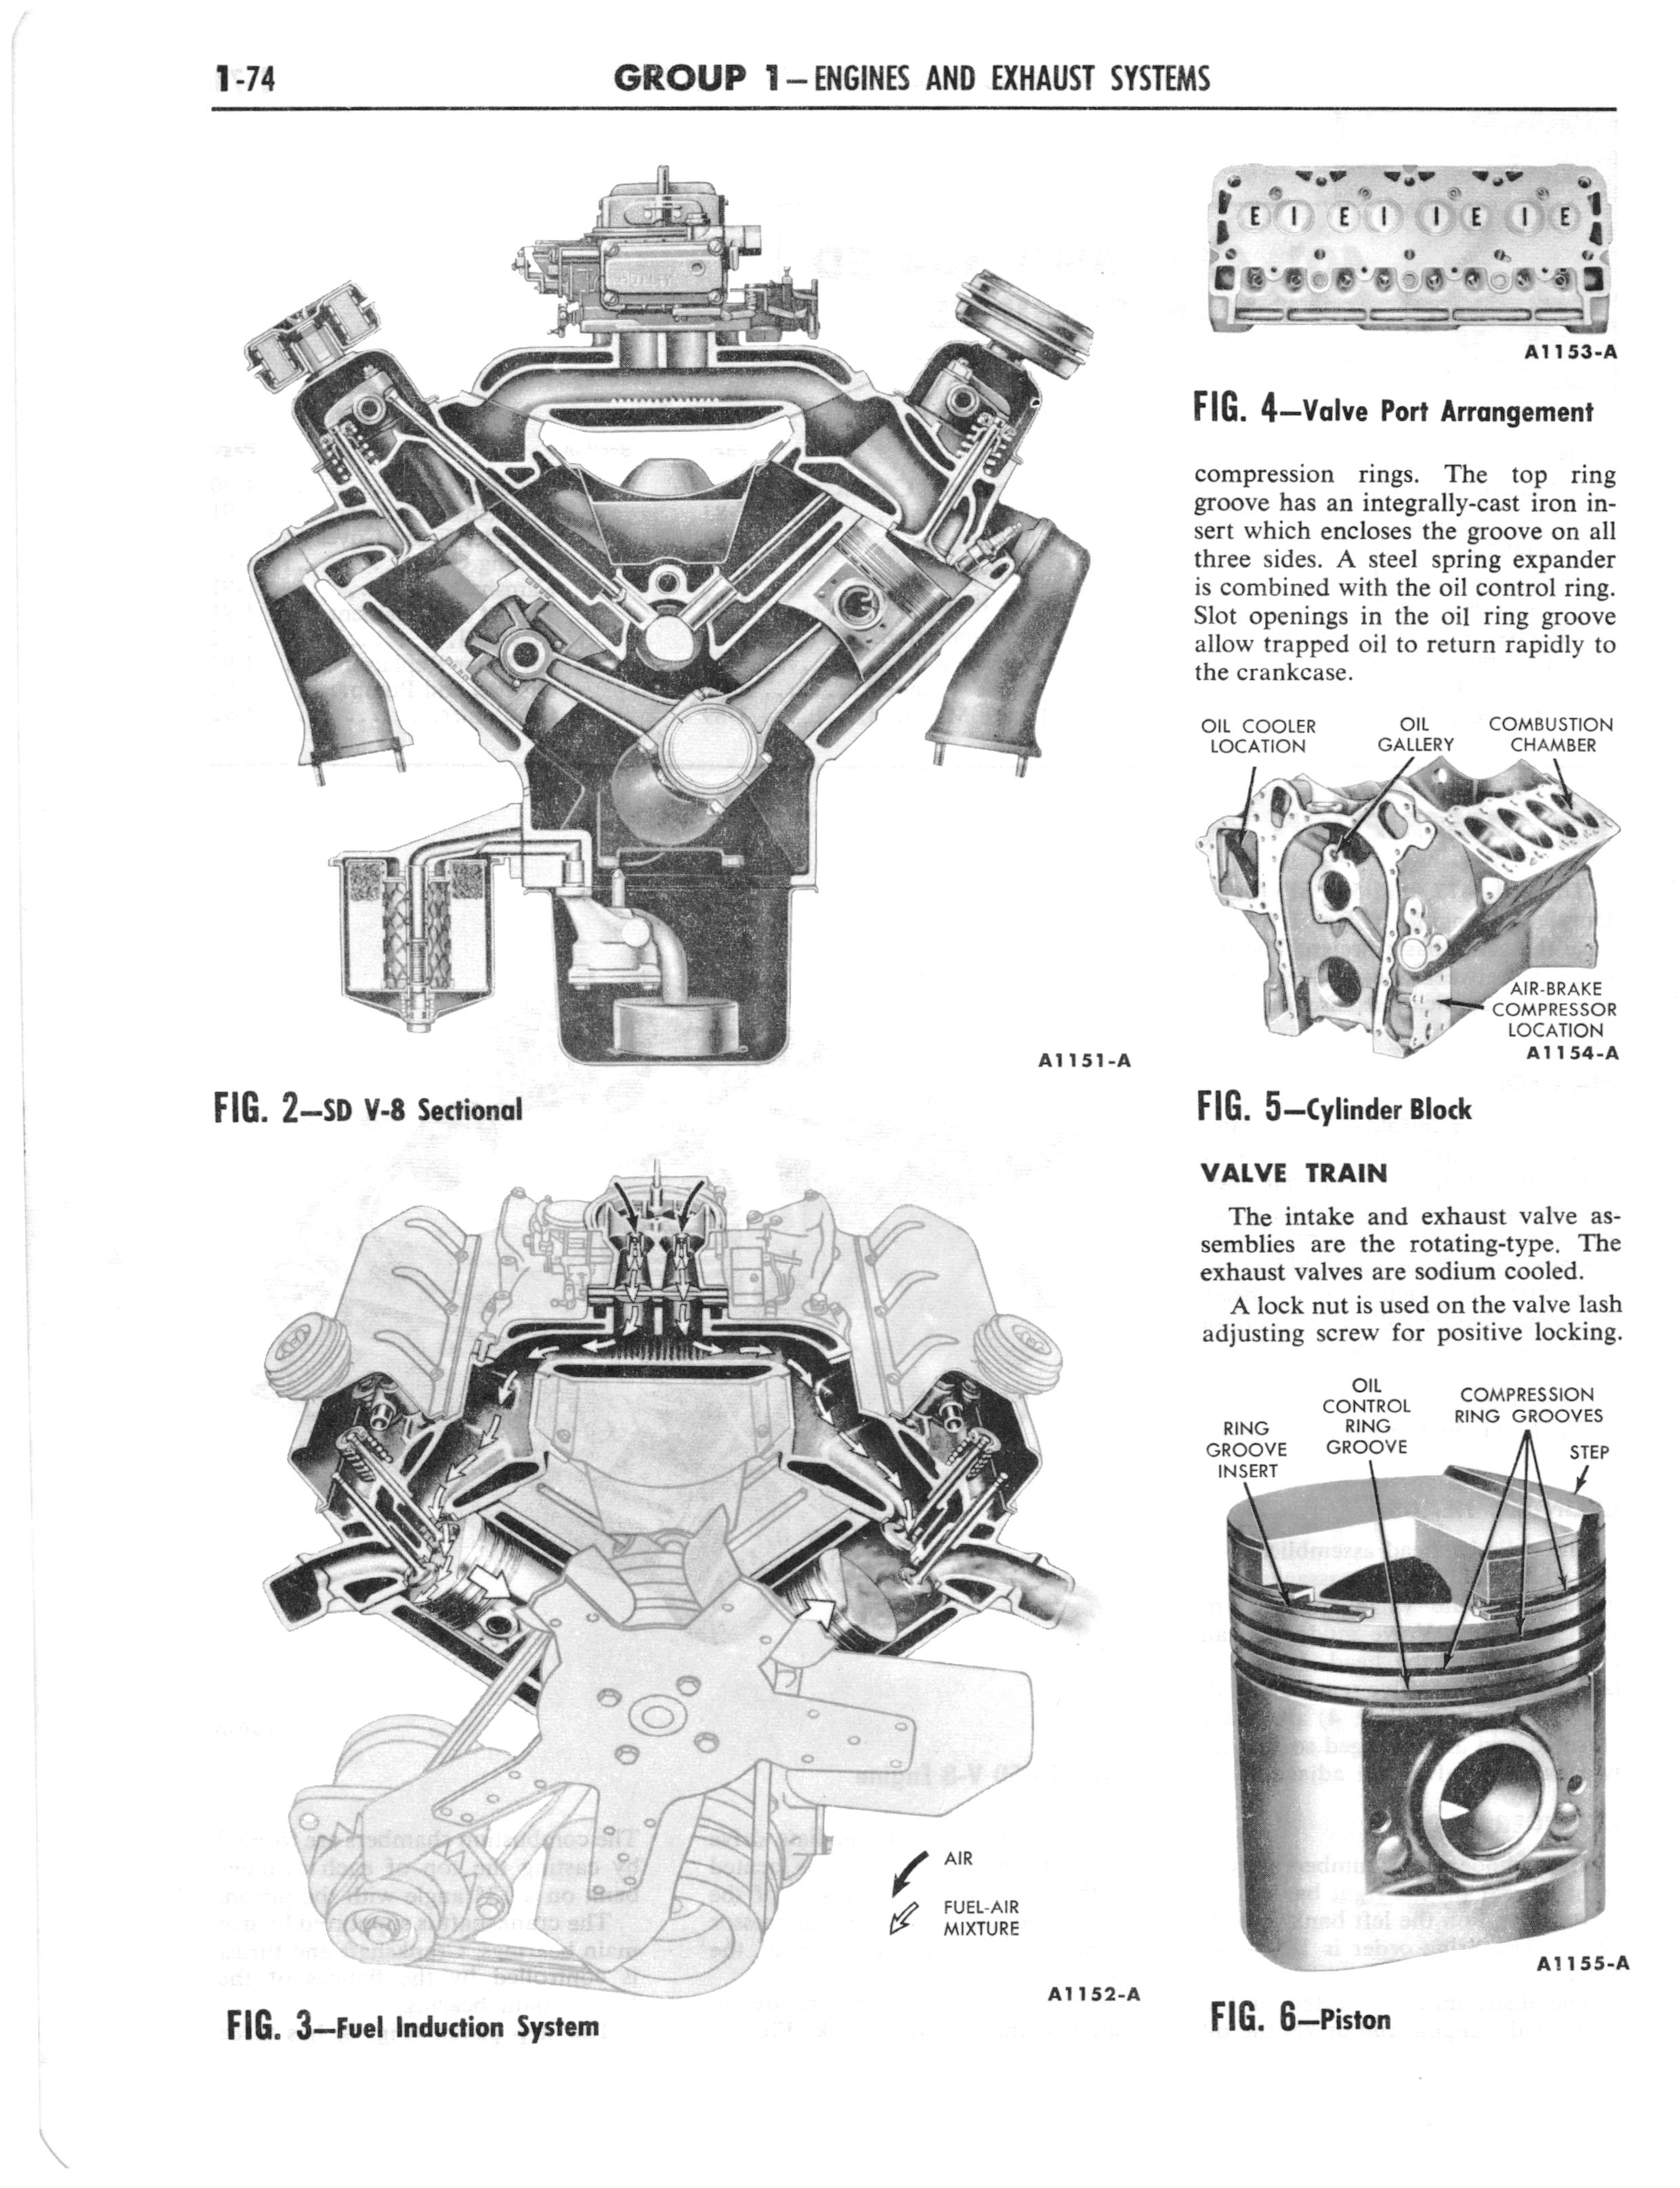 1960 Ford and Mercury Truck Shop Manual page 83 of 641